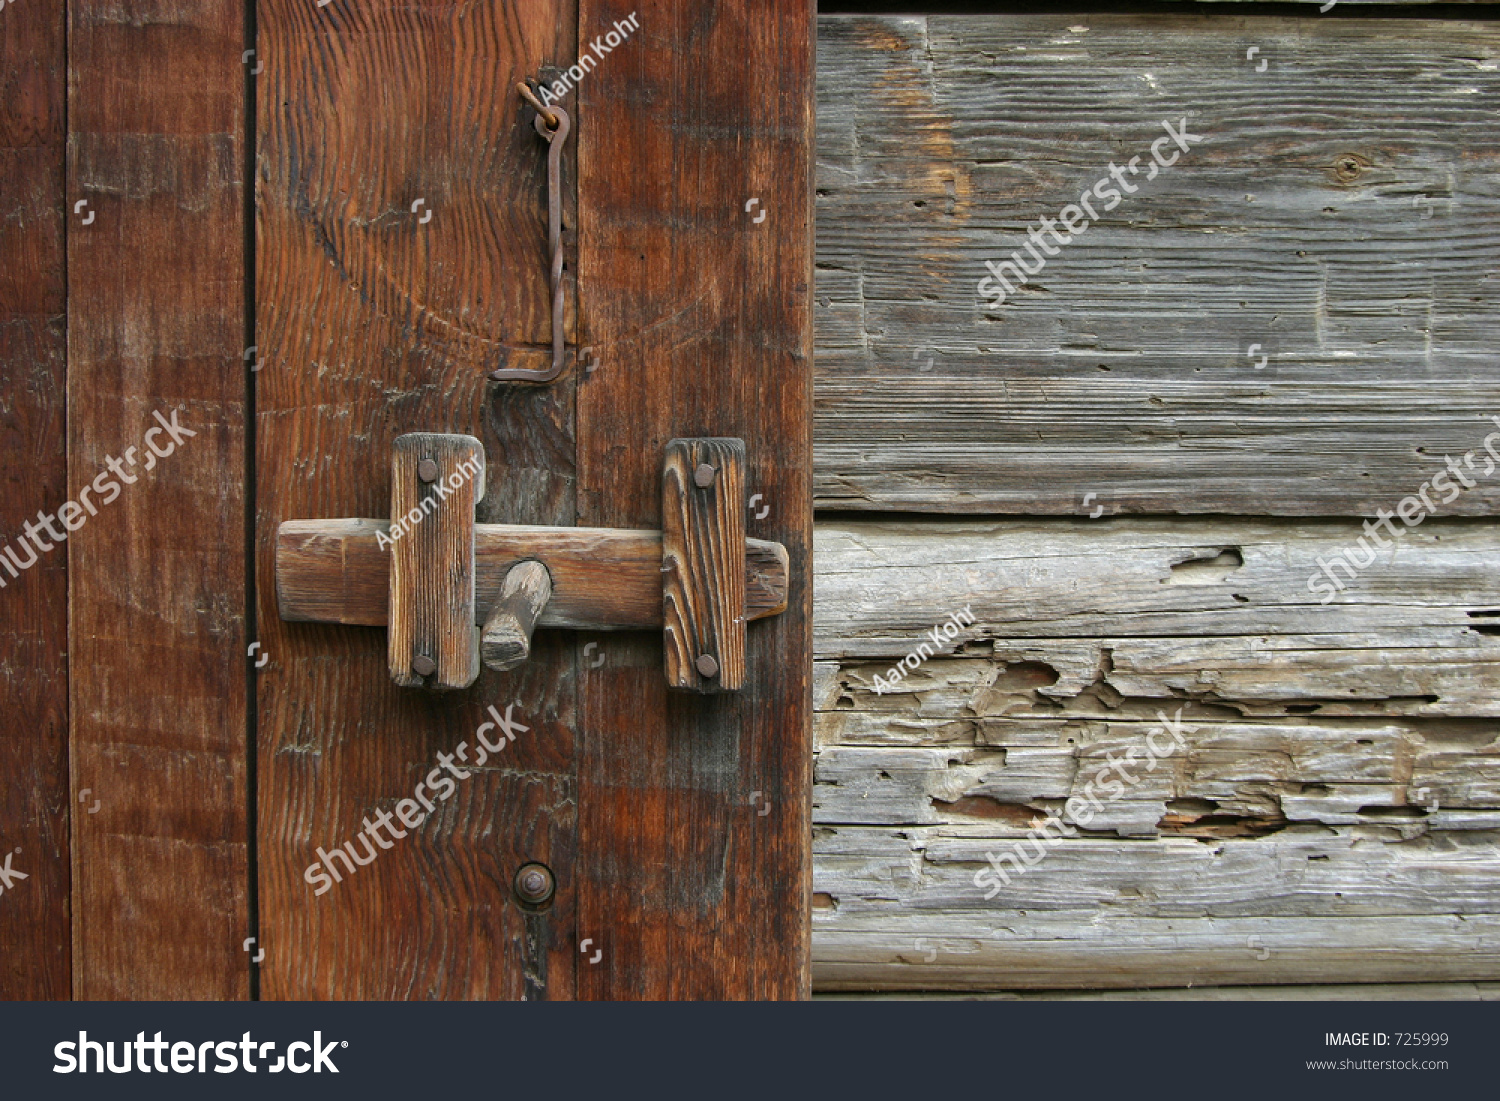 A Very Old And Rustic Door Latch On An Early American